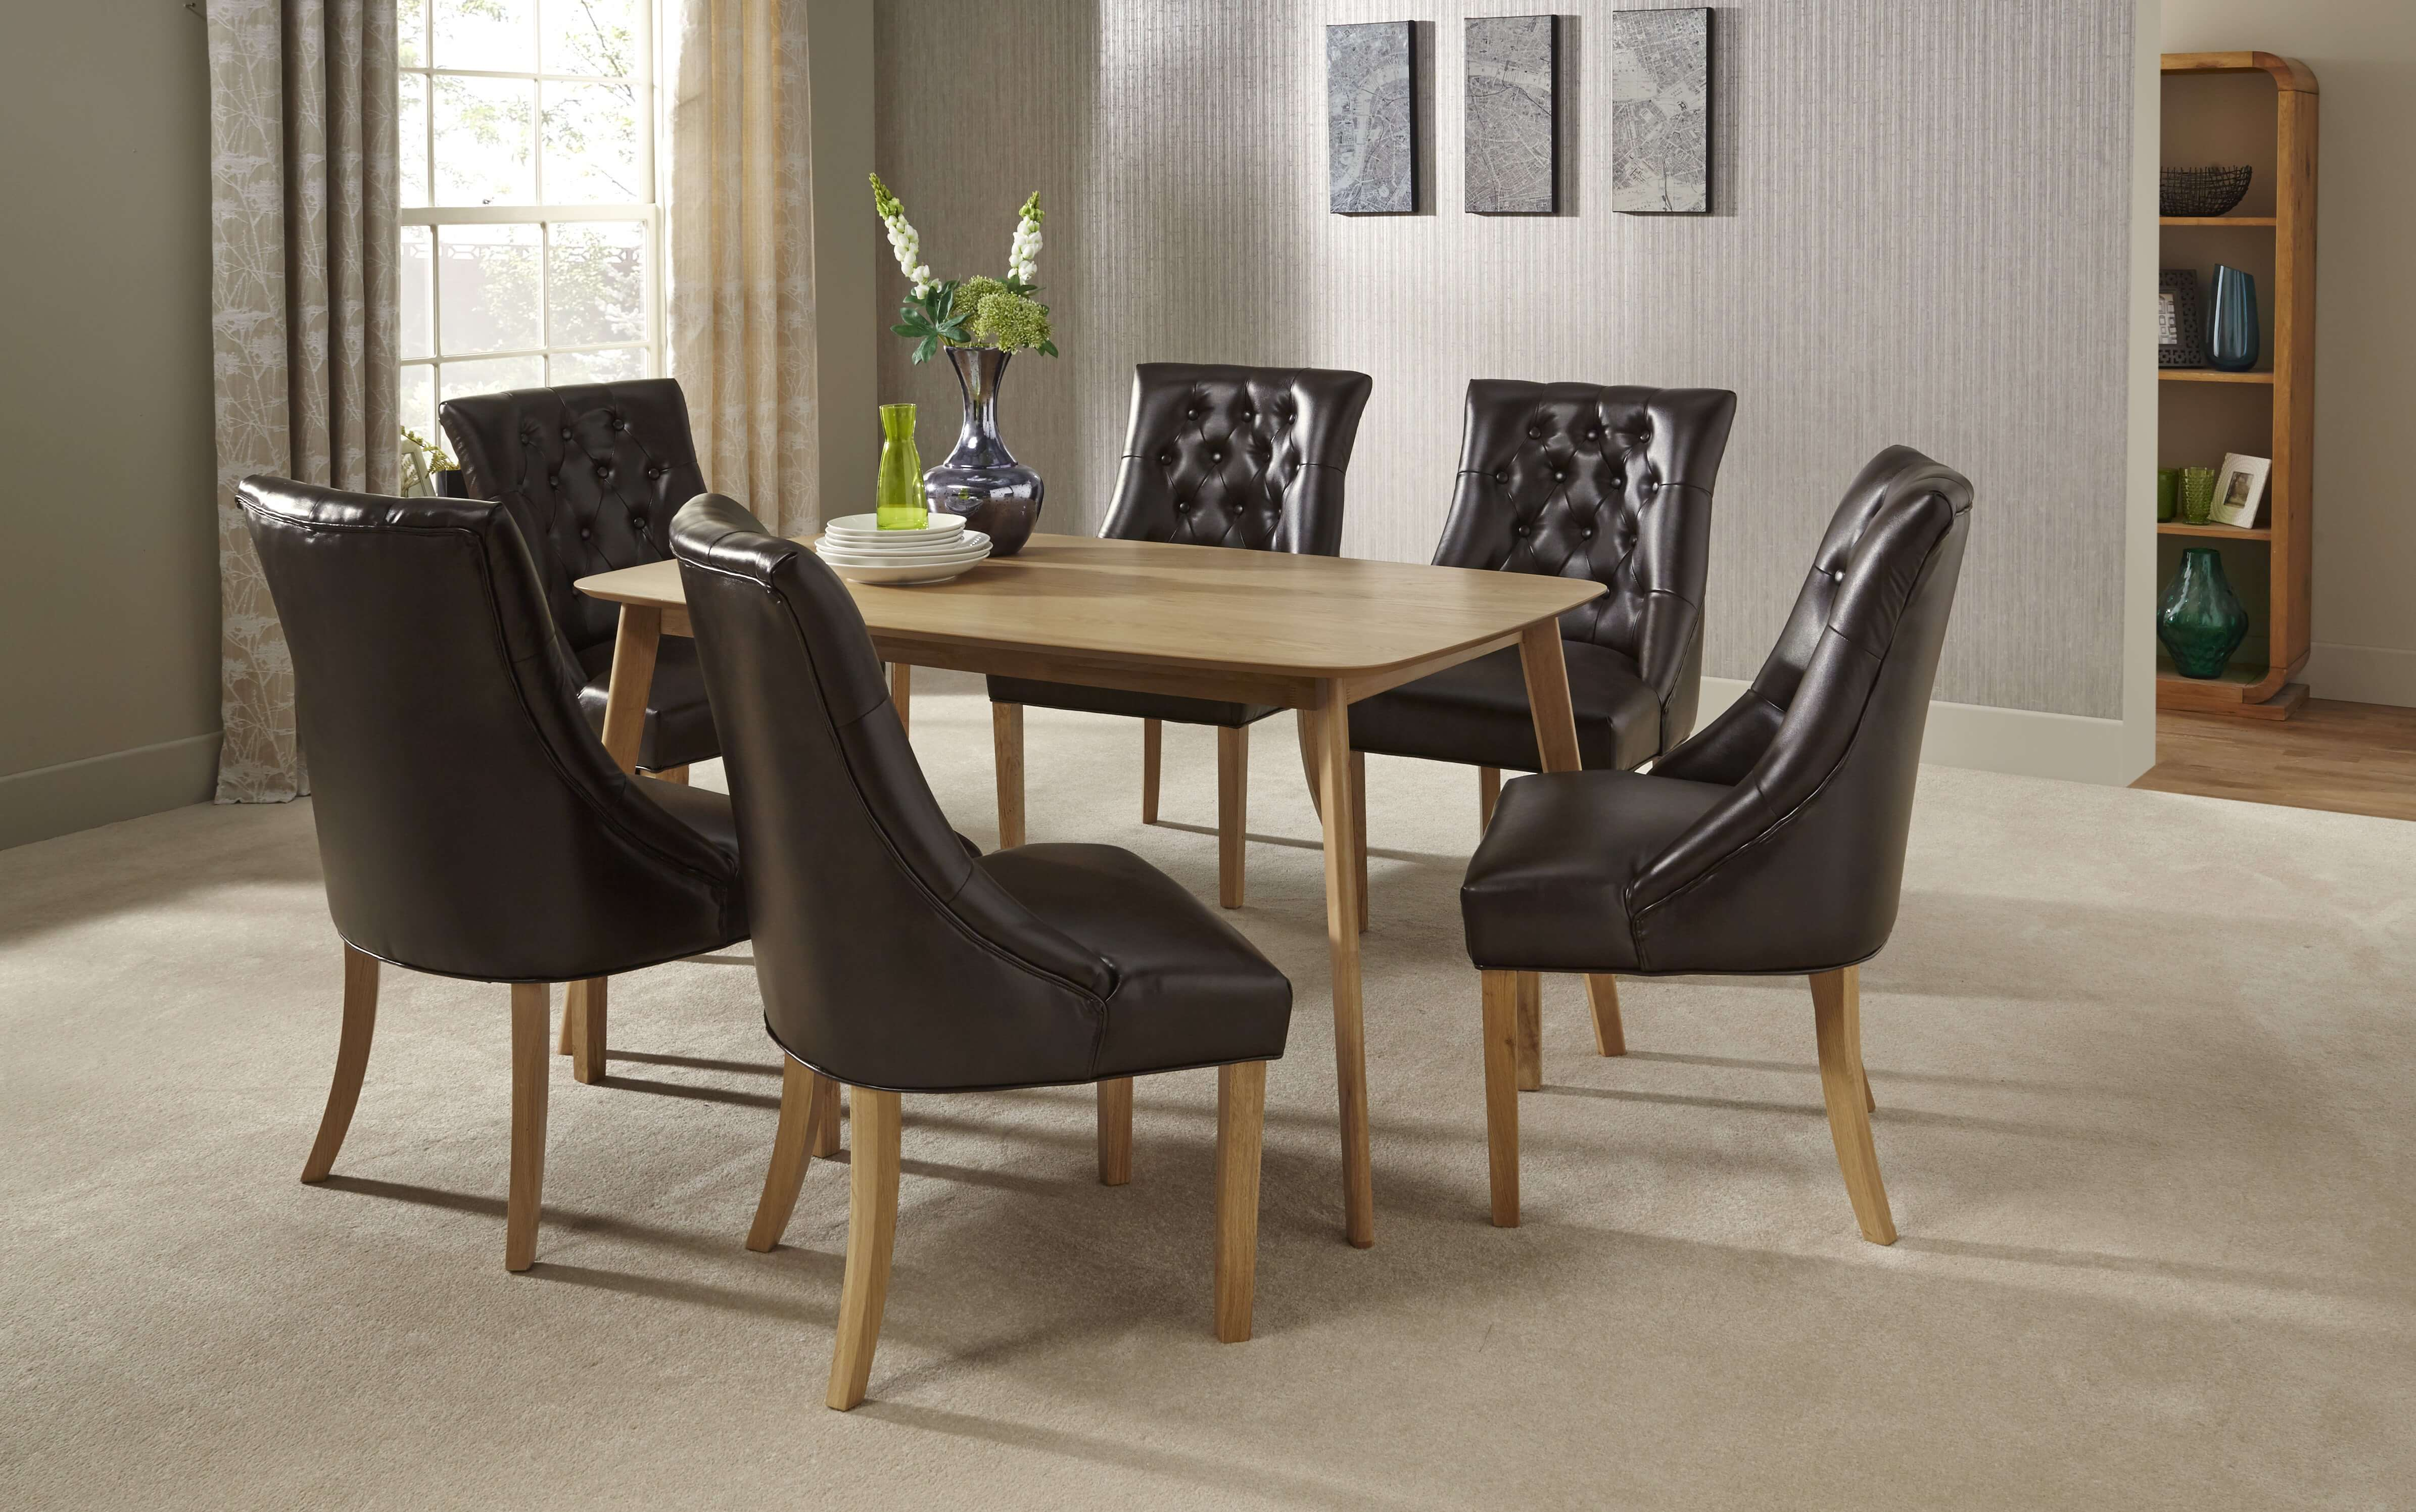 Hobart bonded leather chair free delivery months